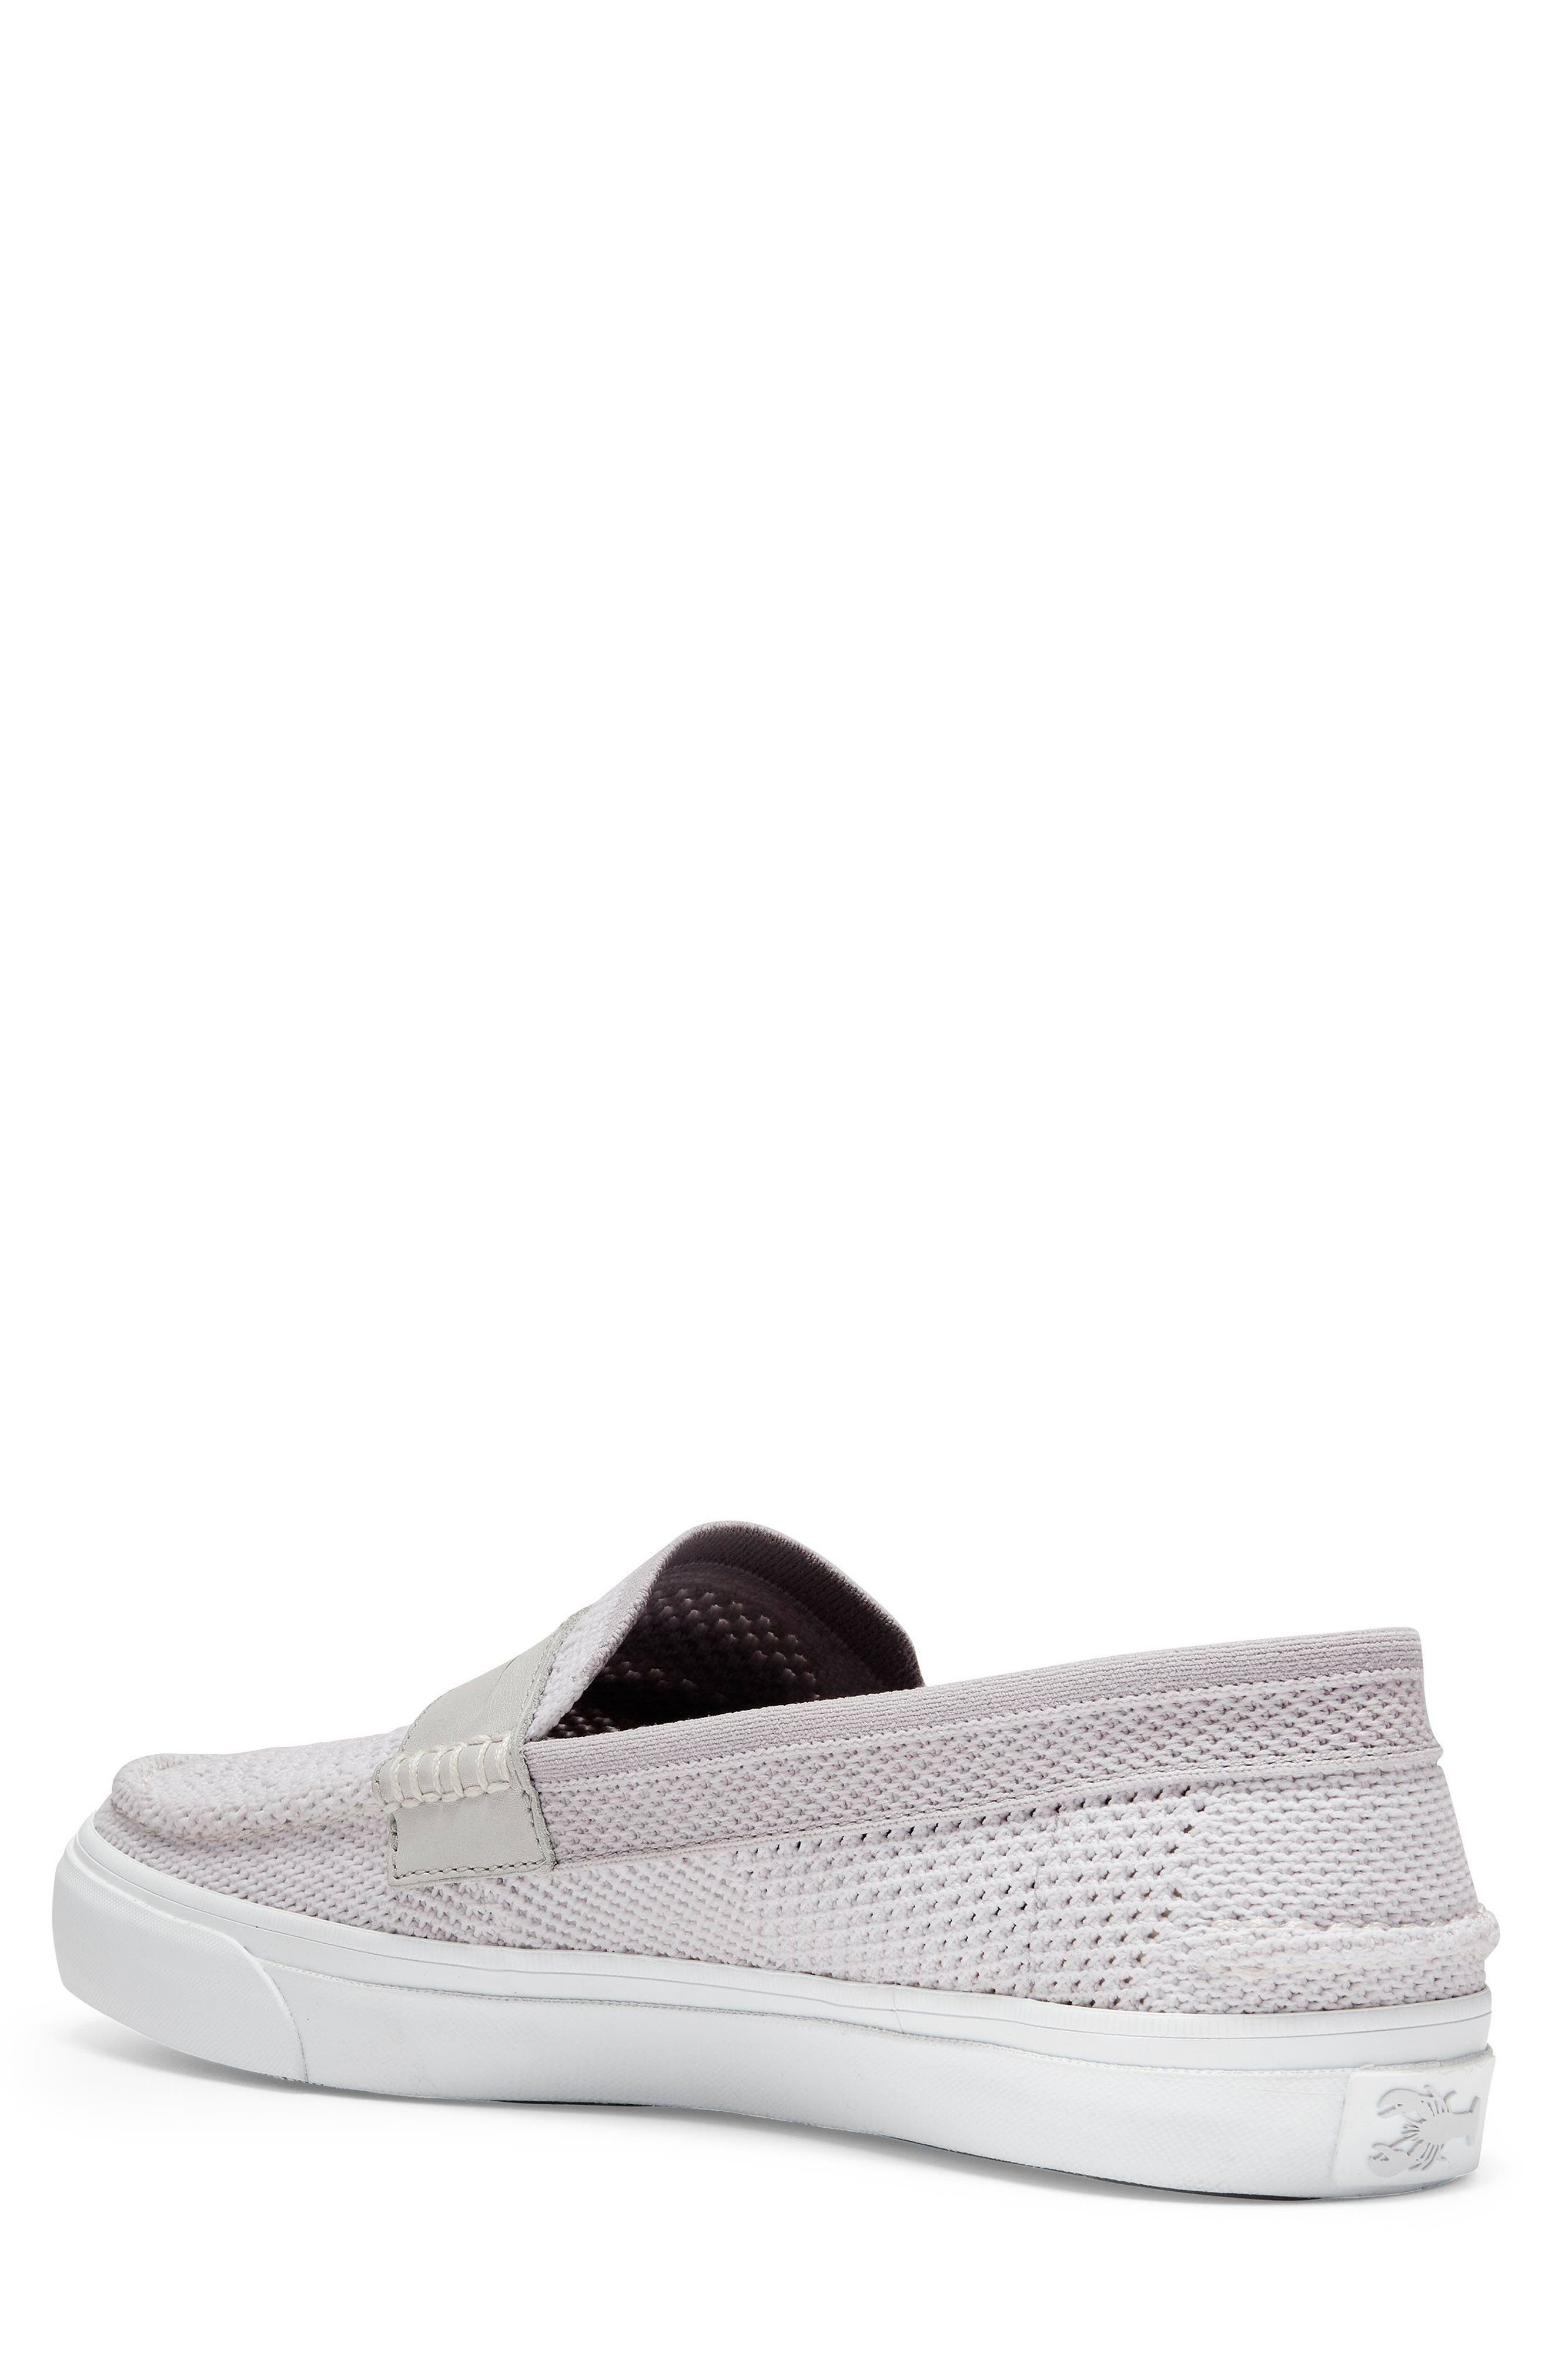 Pinch Stitch LX Stitchlite<sup>™</sup> Penny Loafer,                             Alternate thumbnail 2, color,                             VAPOR GREY /OPTIC WHITE